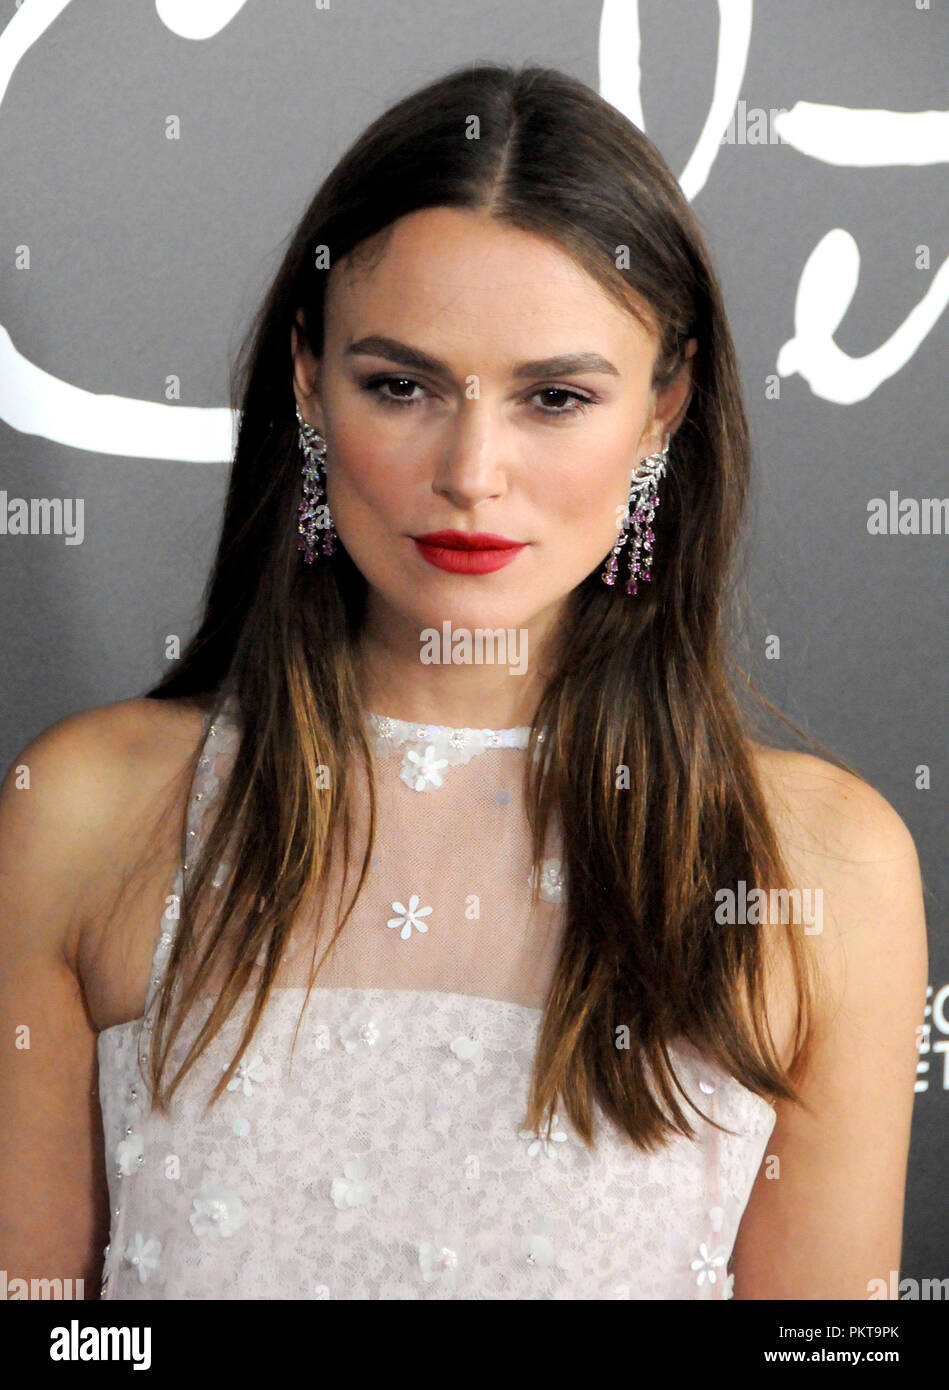 BEVERLY HILLS, CA - SEPTEMBER 14: Actress Keira Knightley attends Los Angeles Special Screening of 'Colette' at The Academy's Samuel Goldwyn Theater in Beverly Hills, California. Photo by Barry King/Alamy Live News - Stock Image